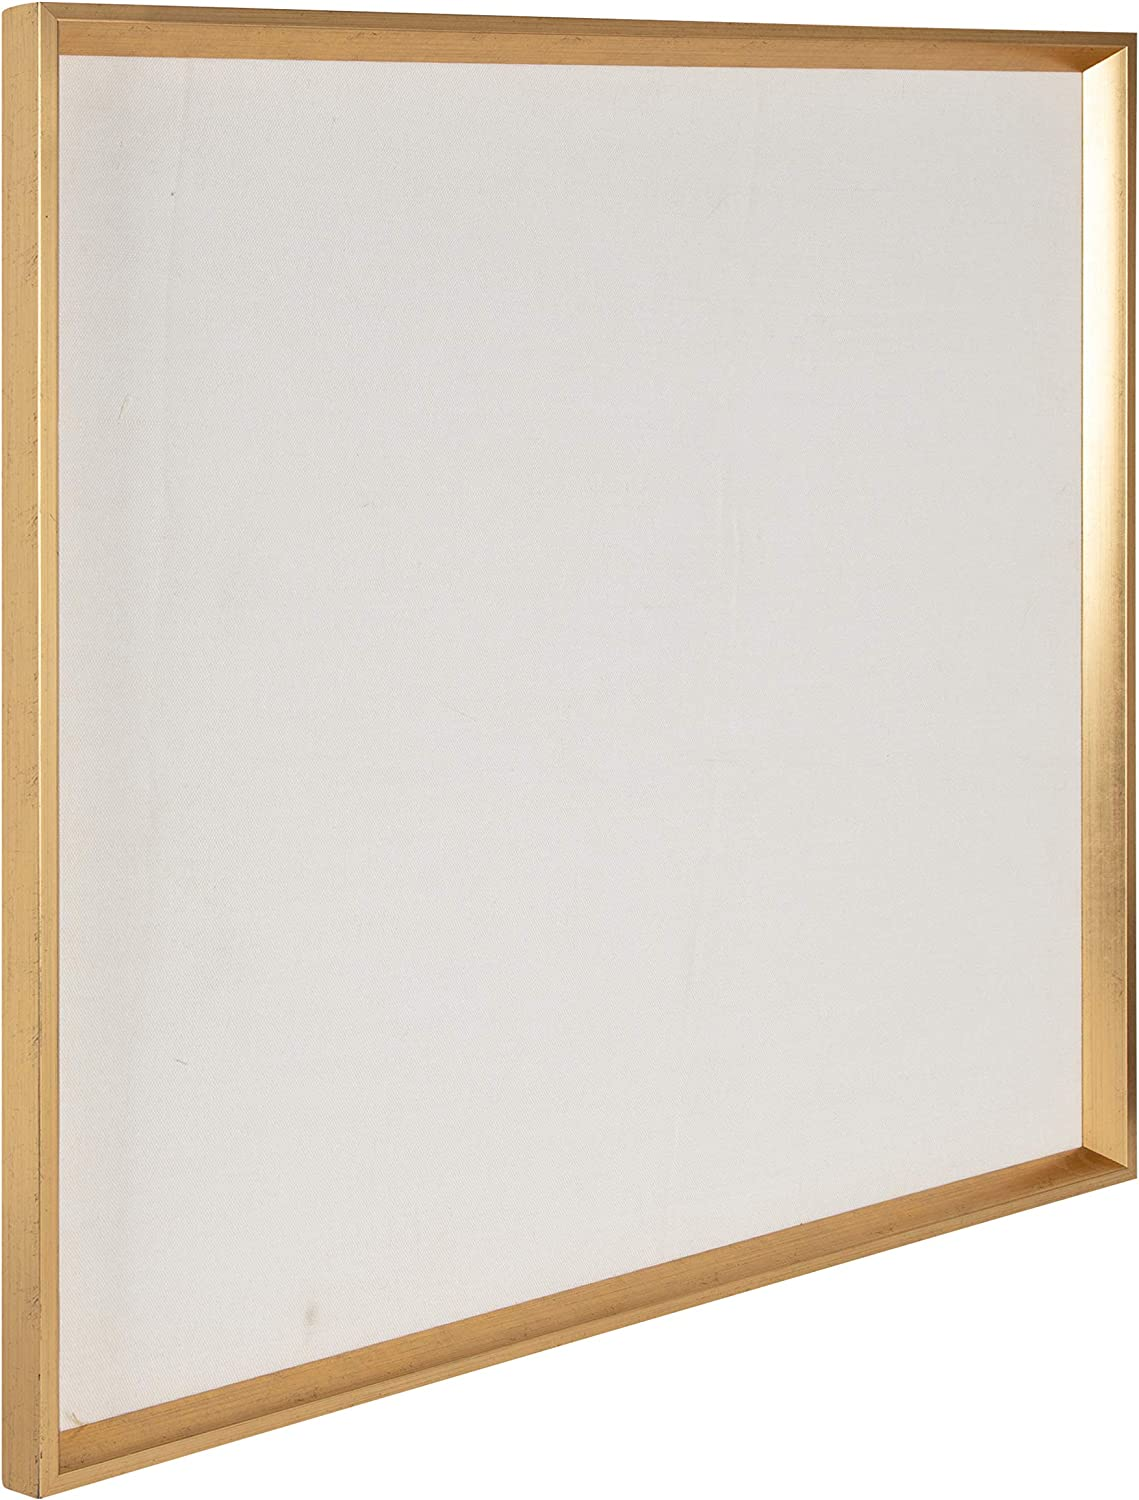 Kate and Laurel Calter Framed Linen Fabric Pinboard, 29.5x29.5, Gold, Modern Wall Organizer for Home or Office